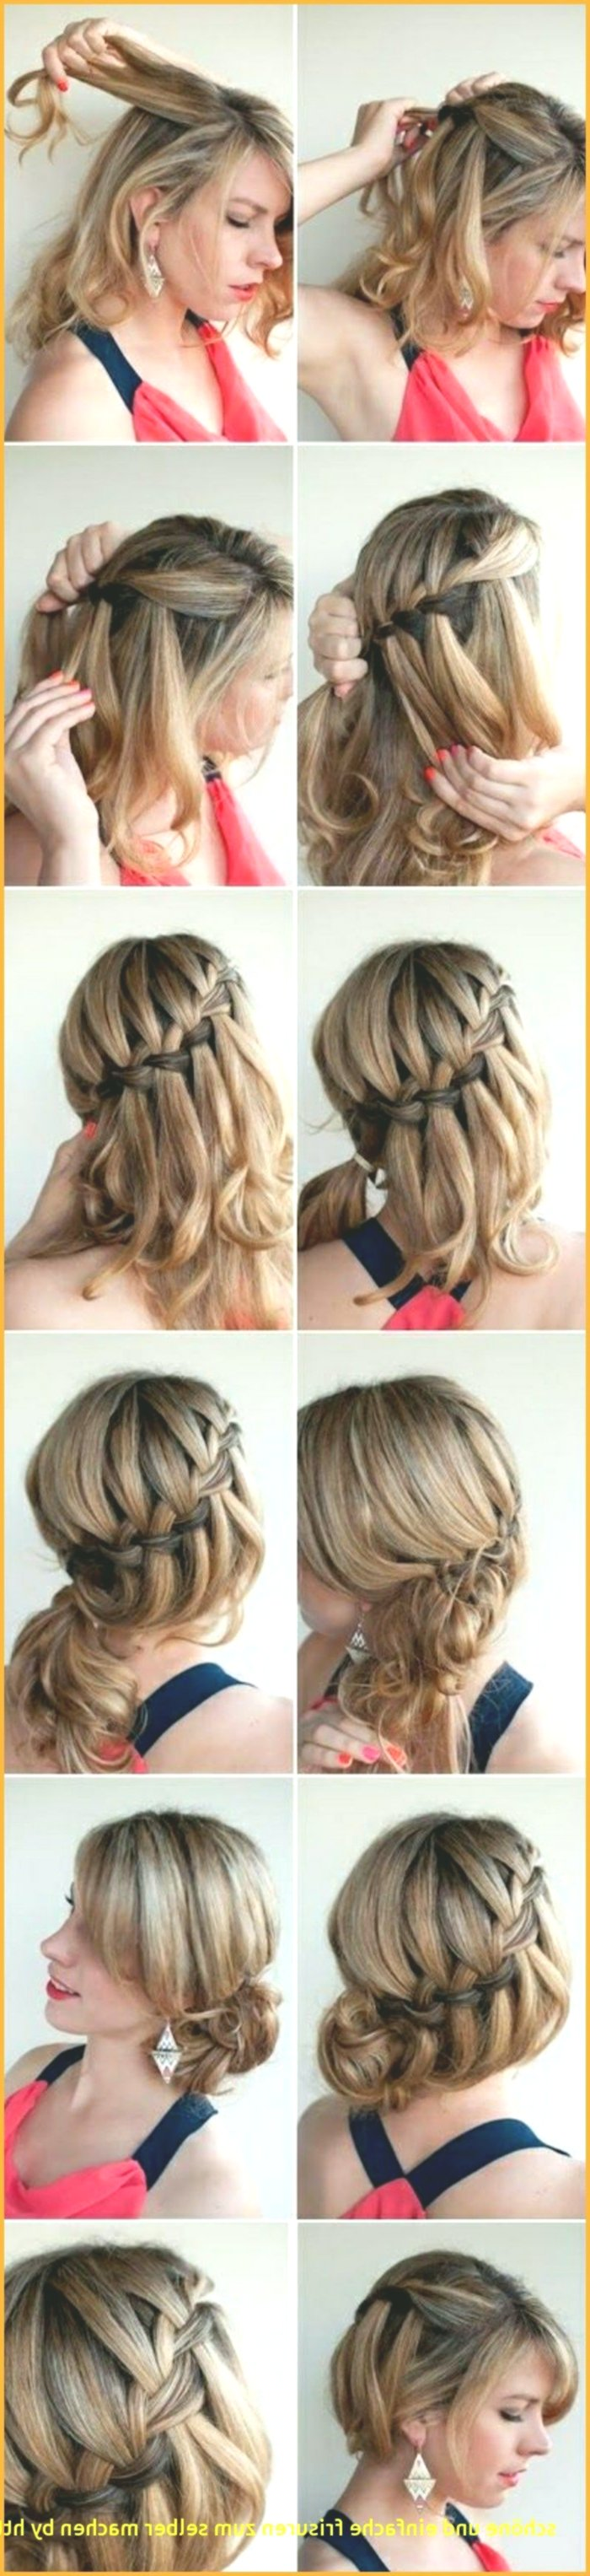 lovely light hairstyles to make yourself plan-Terrific Light hairstyles to make yourself portrait